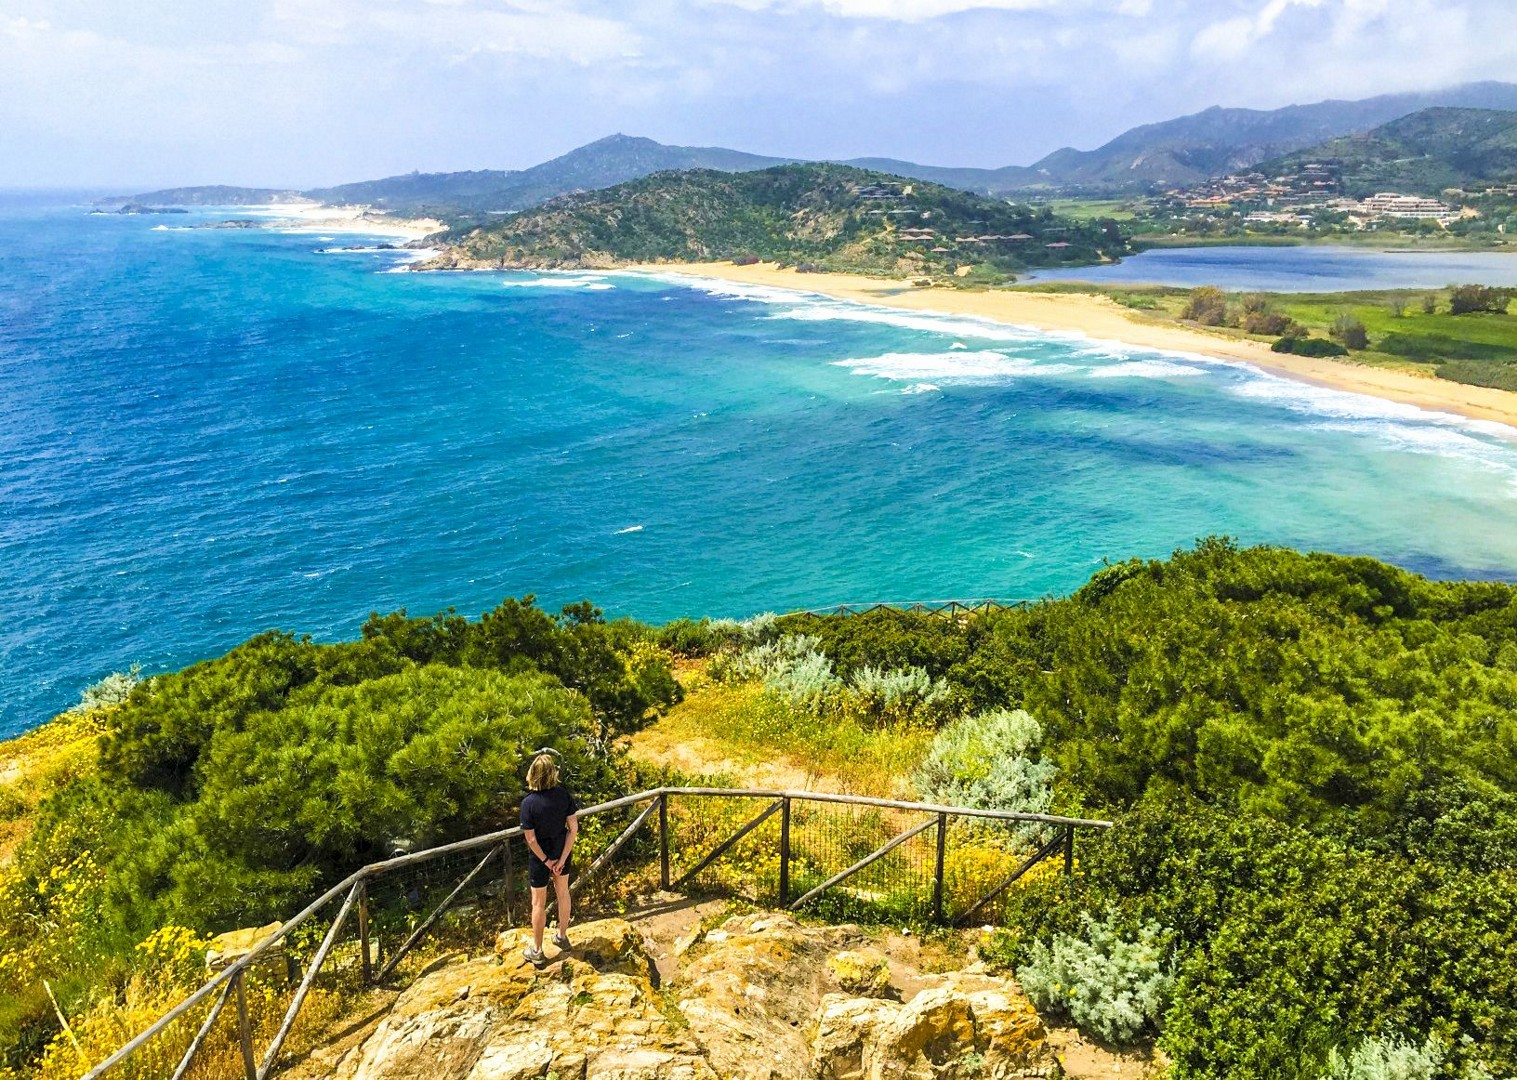 From Chia Towerjpg-2.jpg - Italy - Sardinia - Island Flavours - Guided Leisure Cycling Holiday - Leisure Cycling